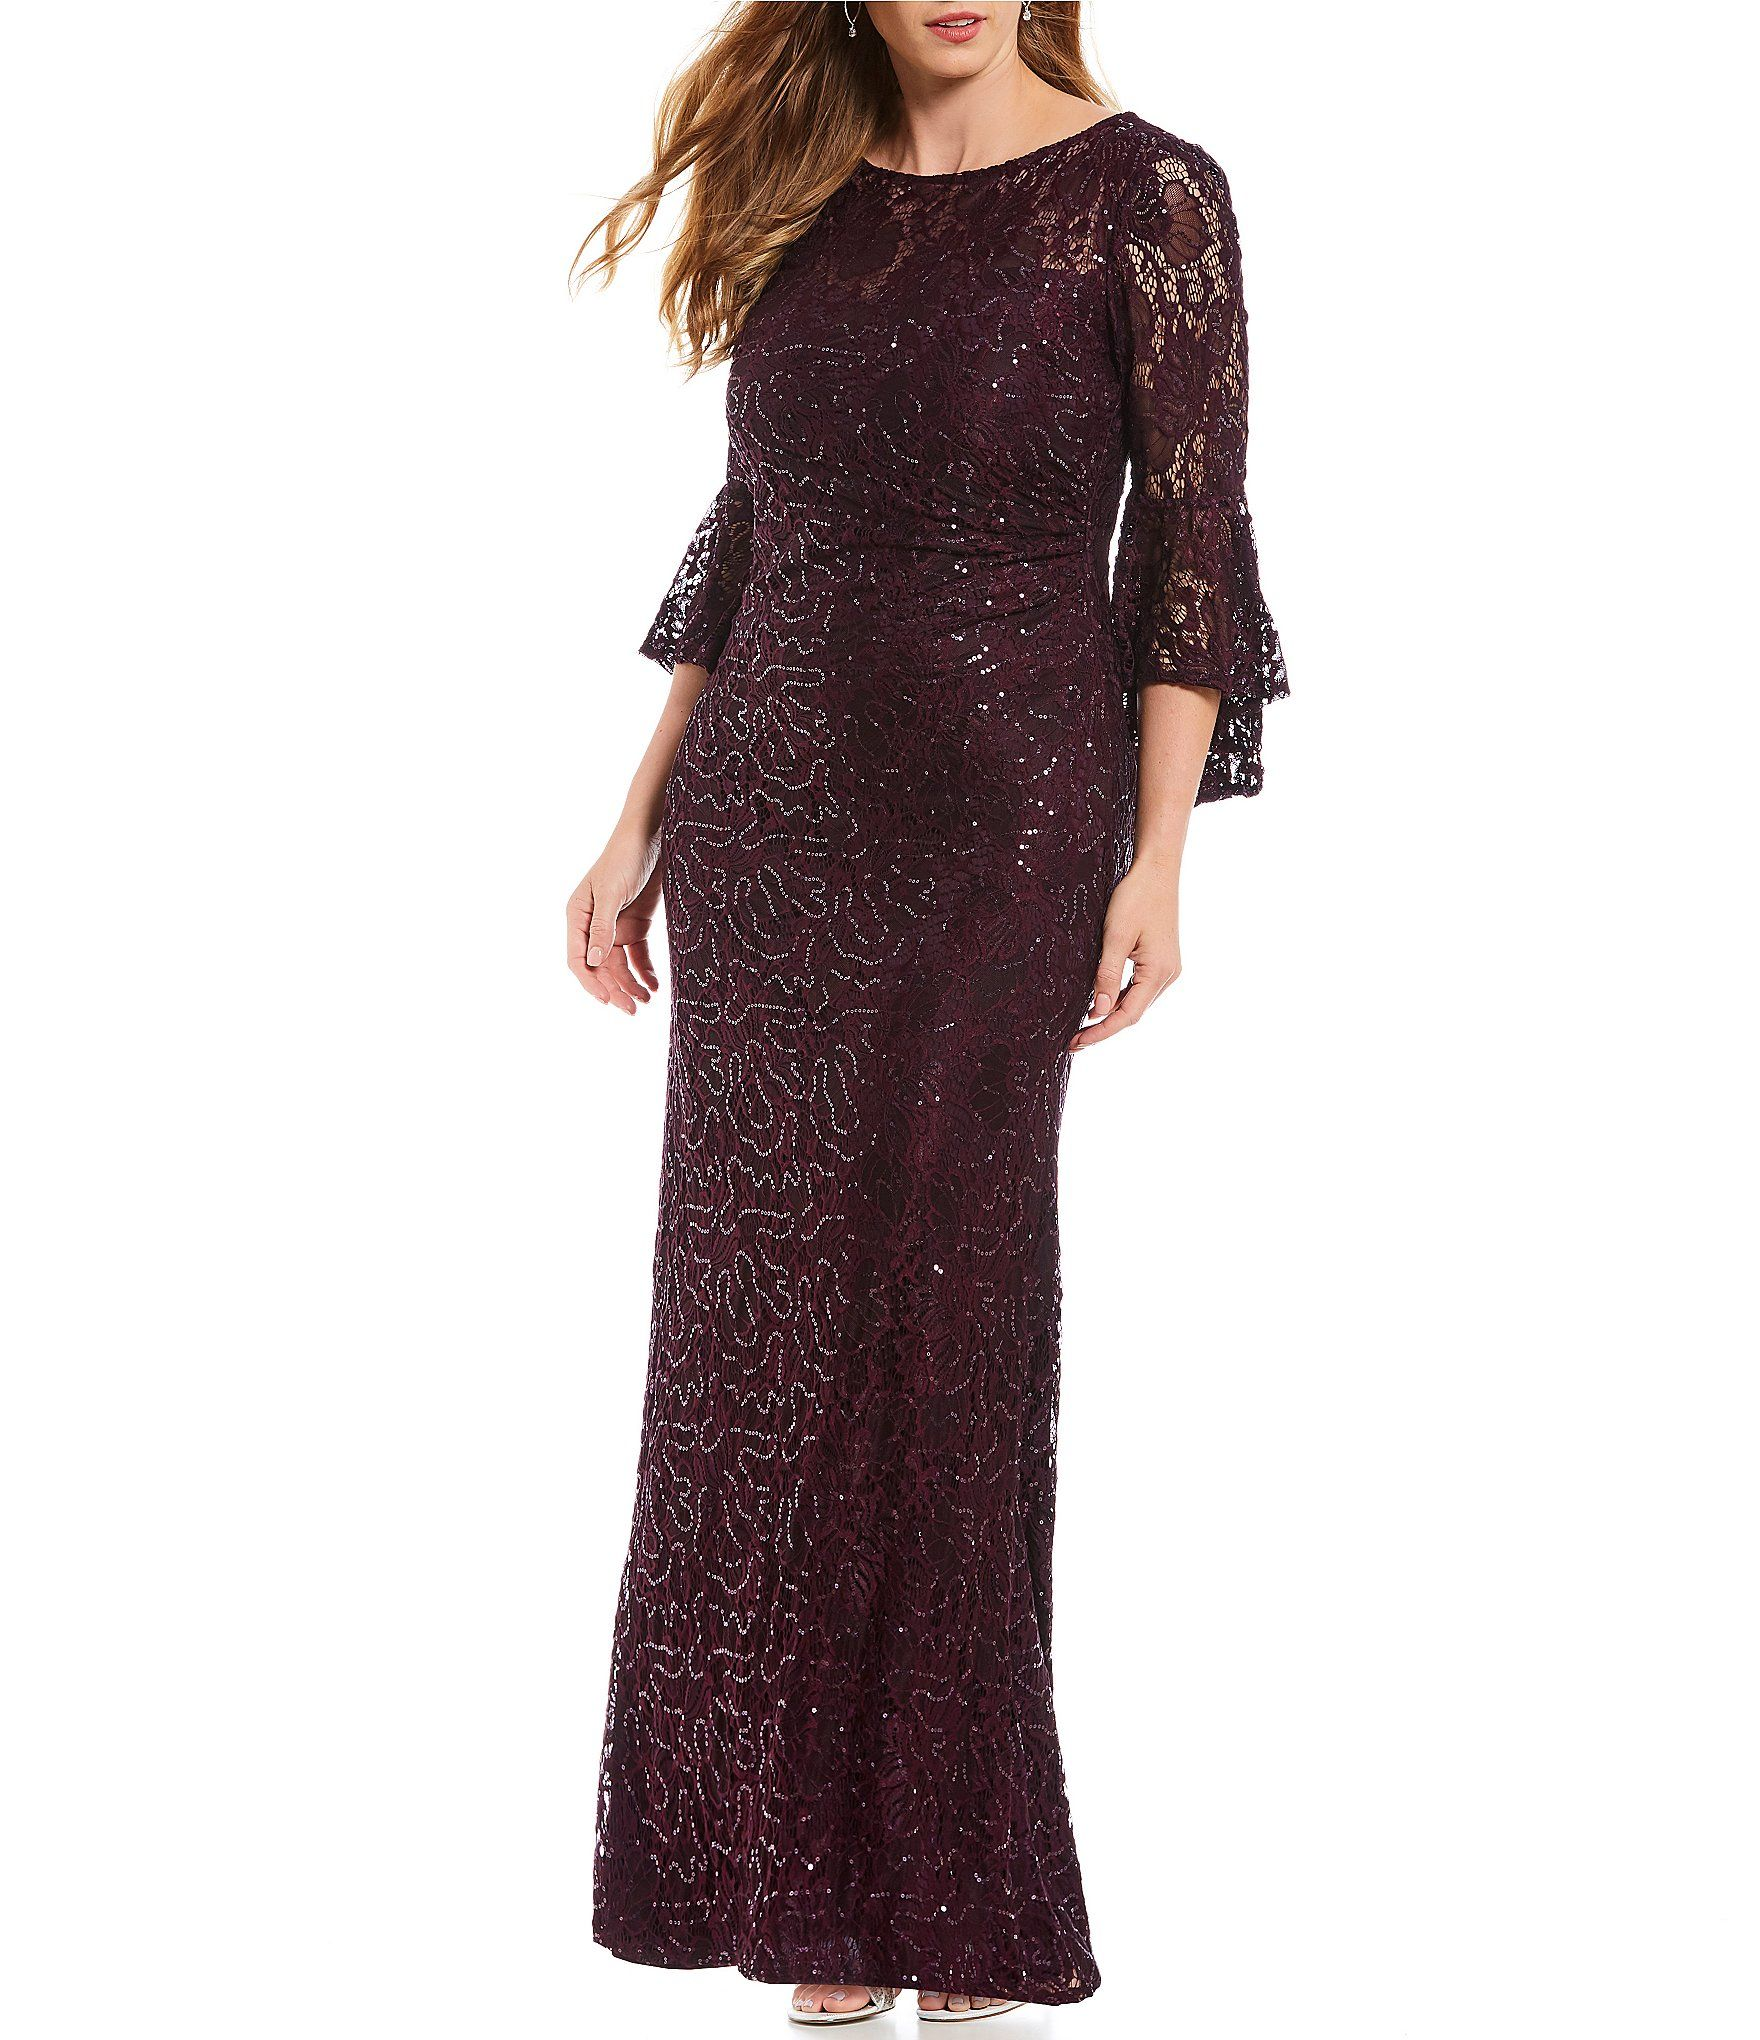 adf018350c9a1 Shop for R   M Richards Plus Size Long Sequin Lace Bell Sleeve Gown at  Dillards.com. Visit Dillards.com to find clothing